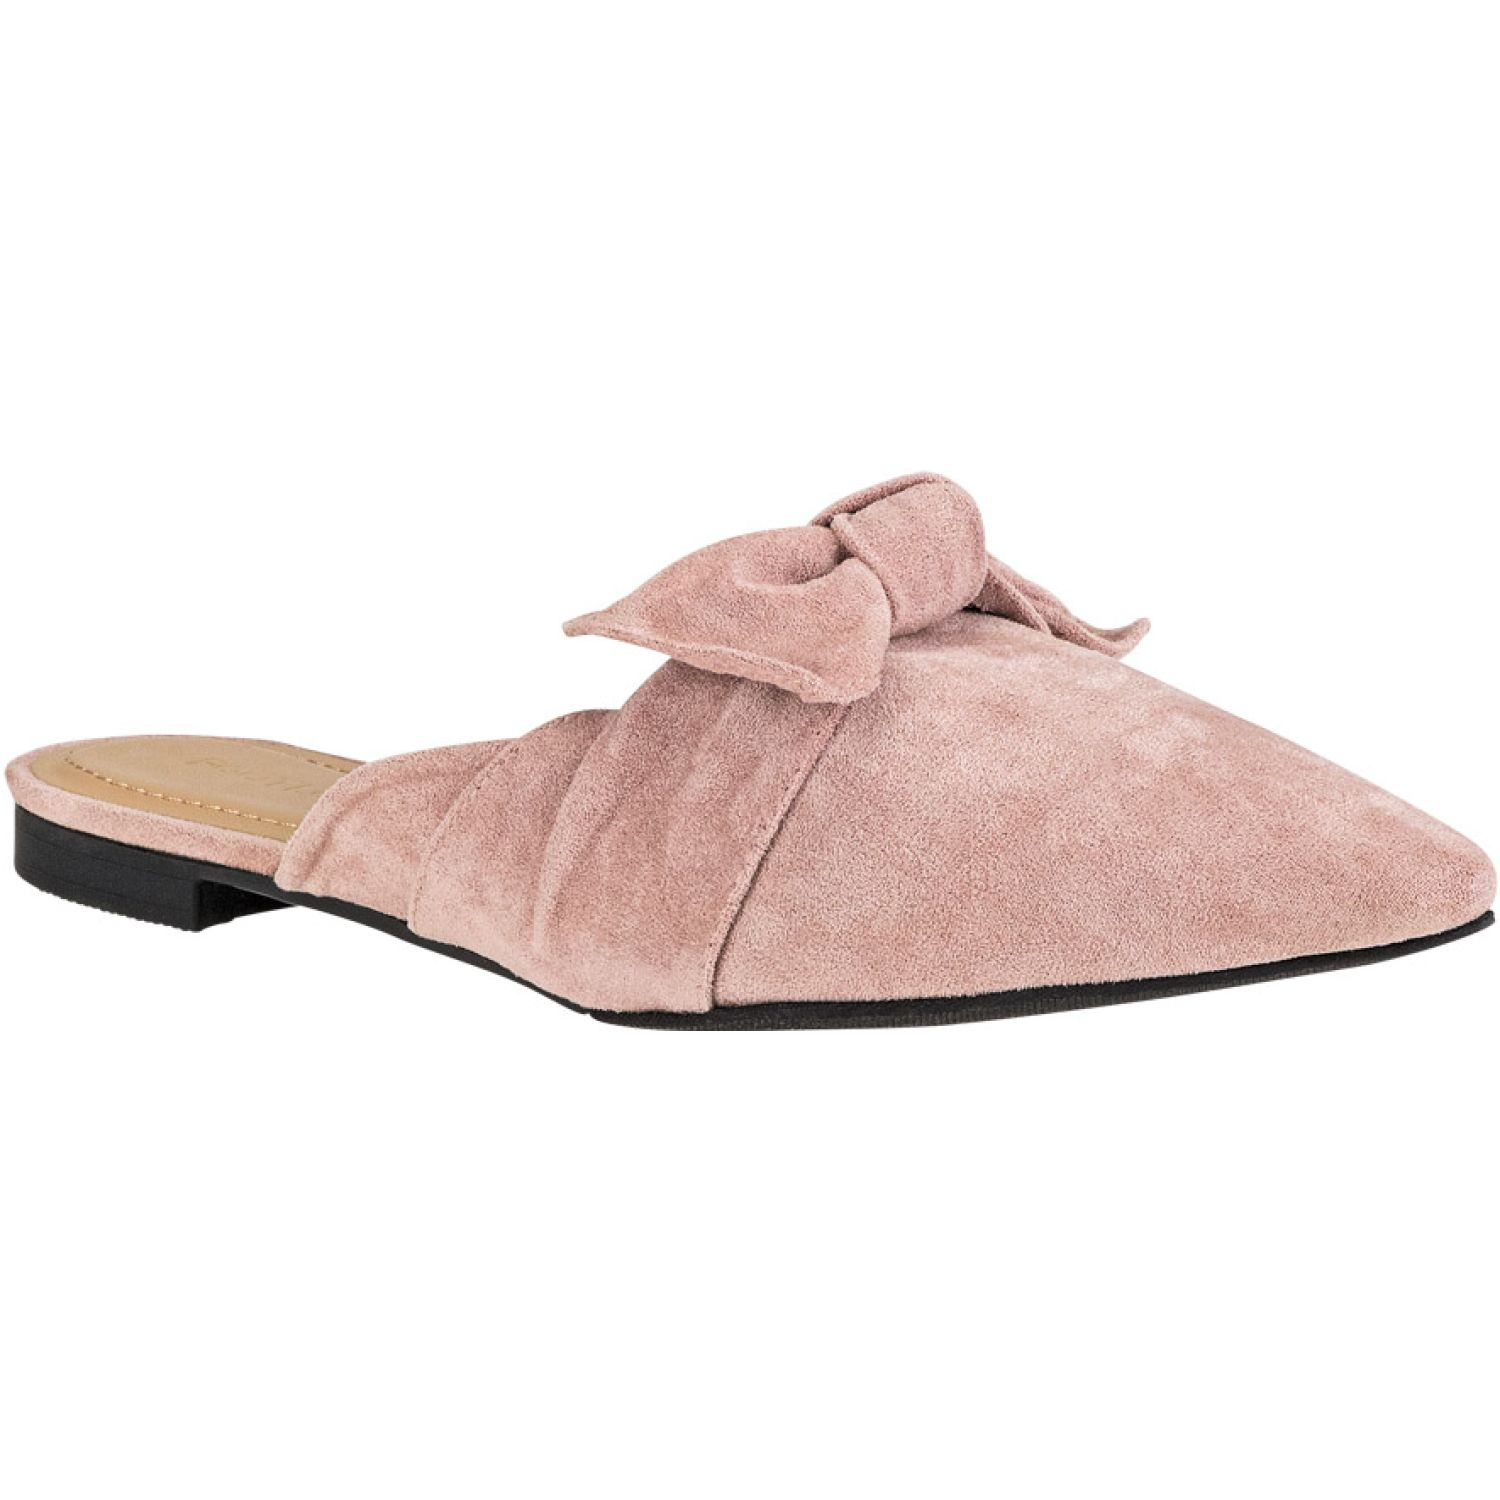 FOOTLOOSE Fch-Ss01v20 ROSADO Flats